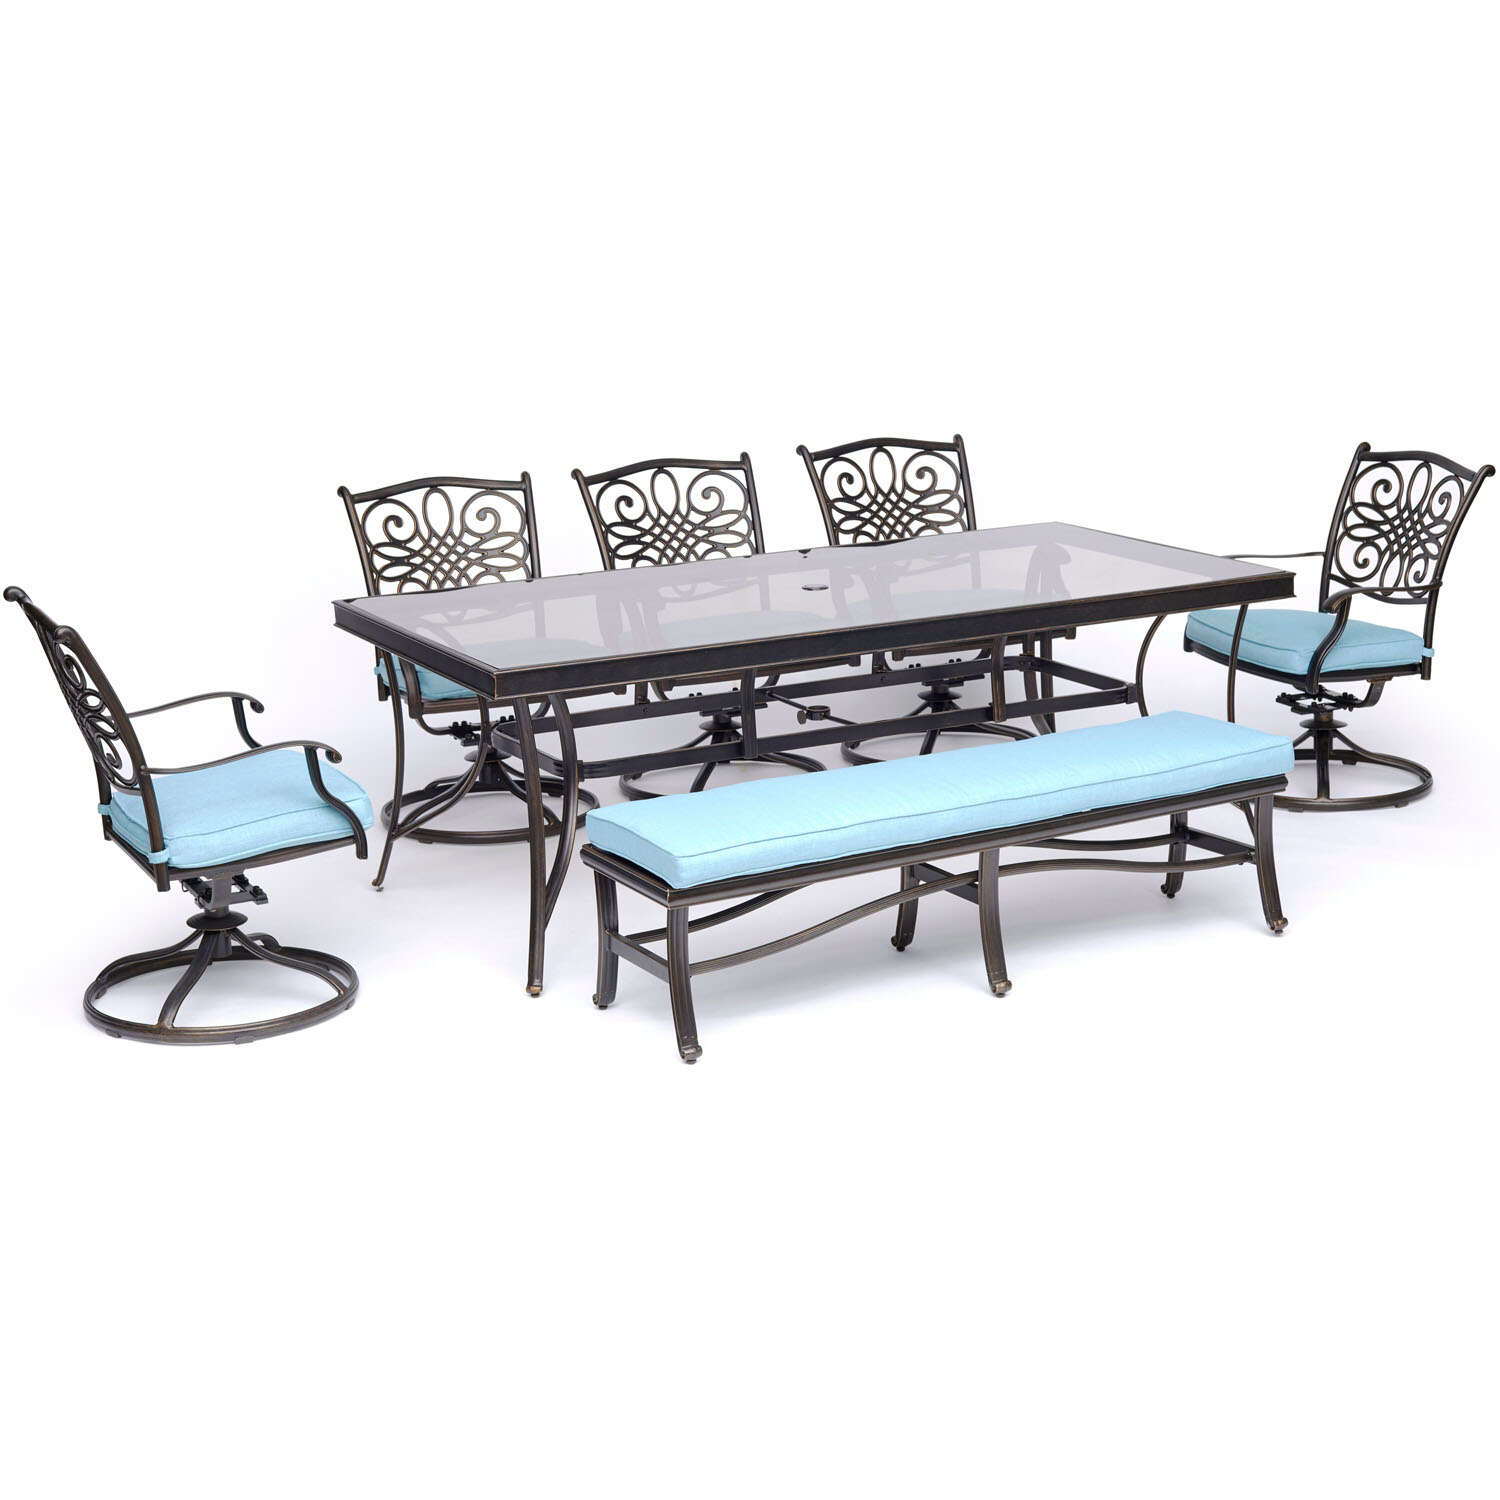 Hanover  Traditions  7 pc. Oil Rubbed Bronze  Aluminum  Dining Patio Set  Blue